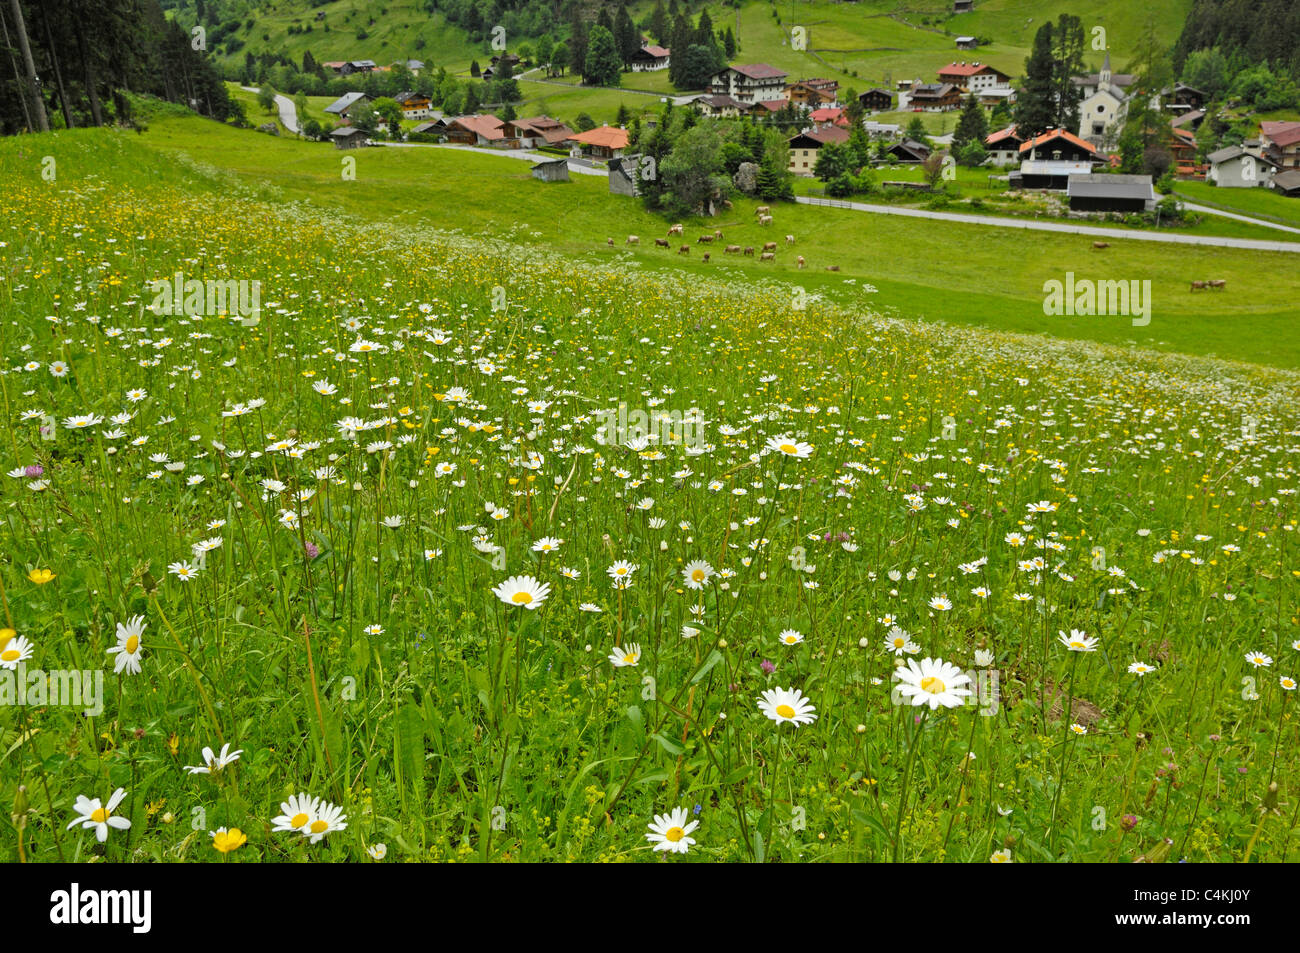 Traditional meadow flowers grown for animal feed on the side of a hill outside Ginzling in Austria. Stock Photo